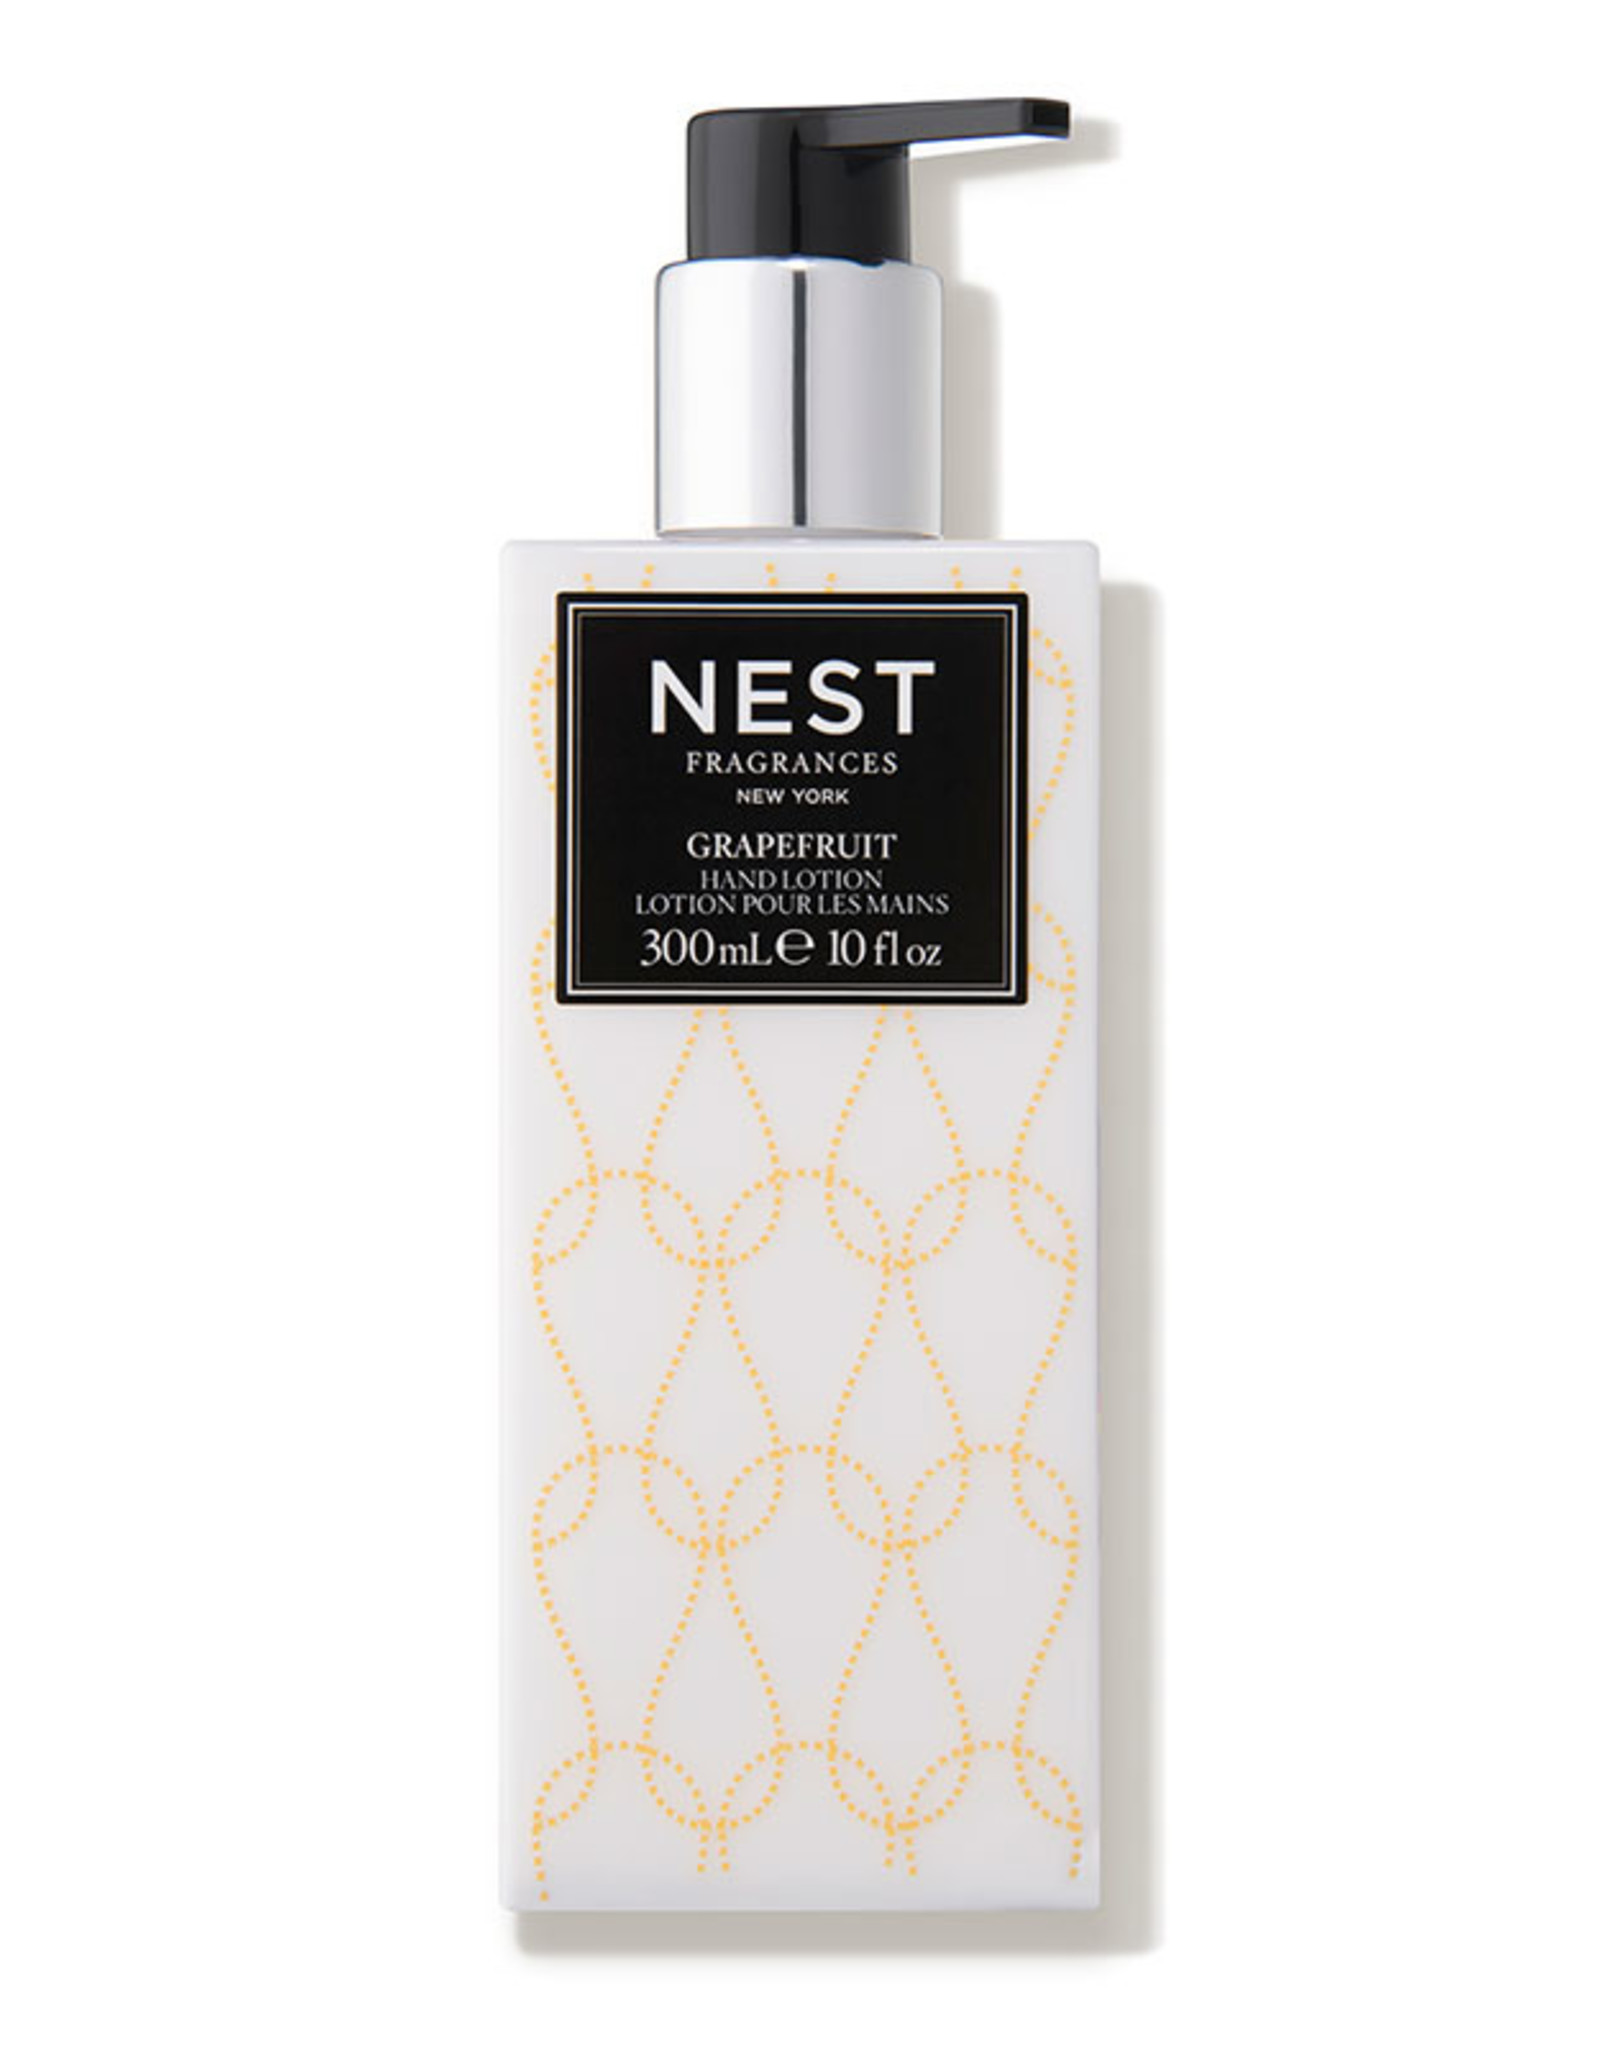 Nest Fragrances Grapefruit Hand Lotion 10oz